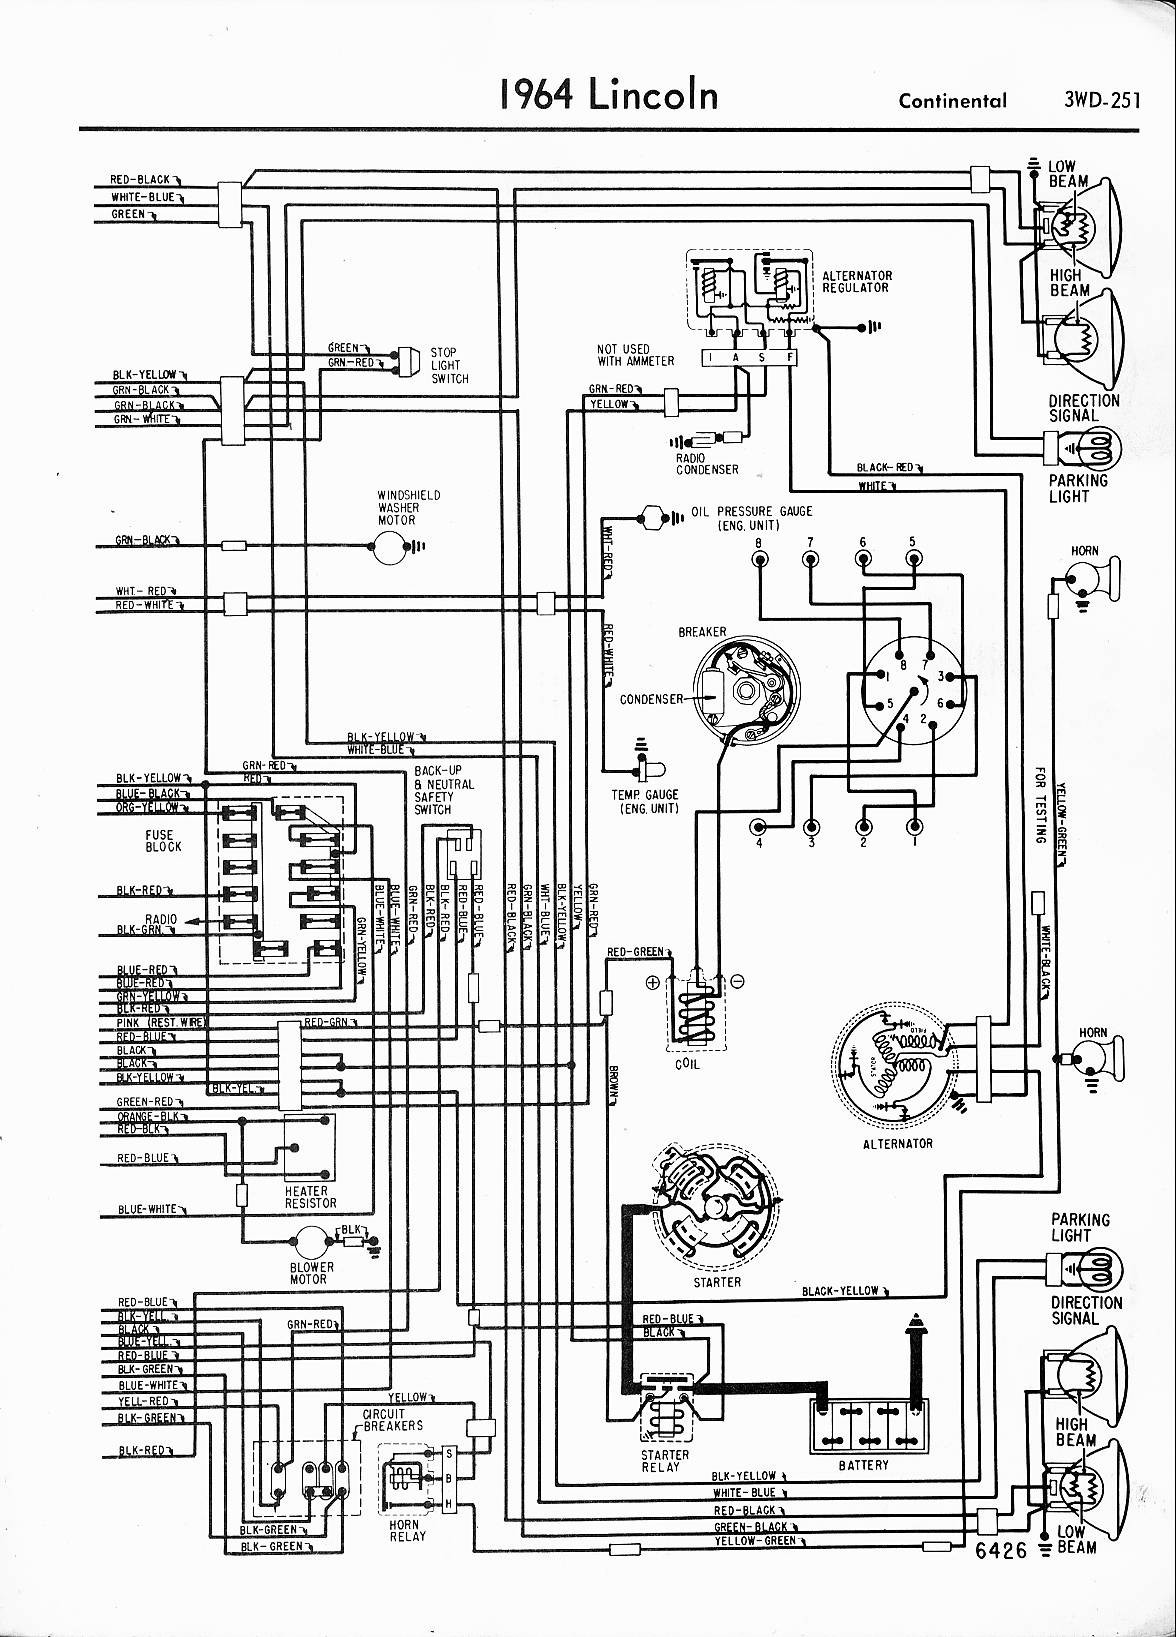 Stero Dishwasher Wiring Diagram Trusted Diagrams For Er44 1960 Lincoln Data U2022